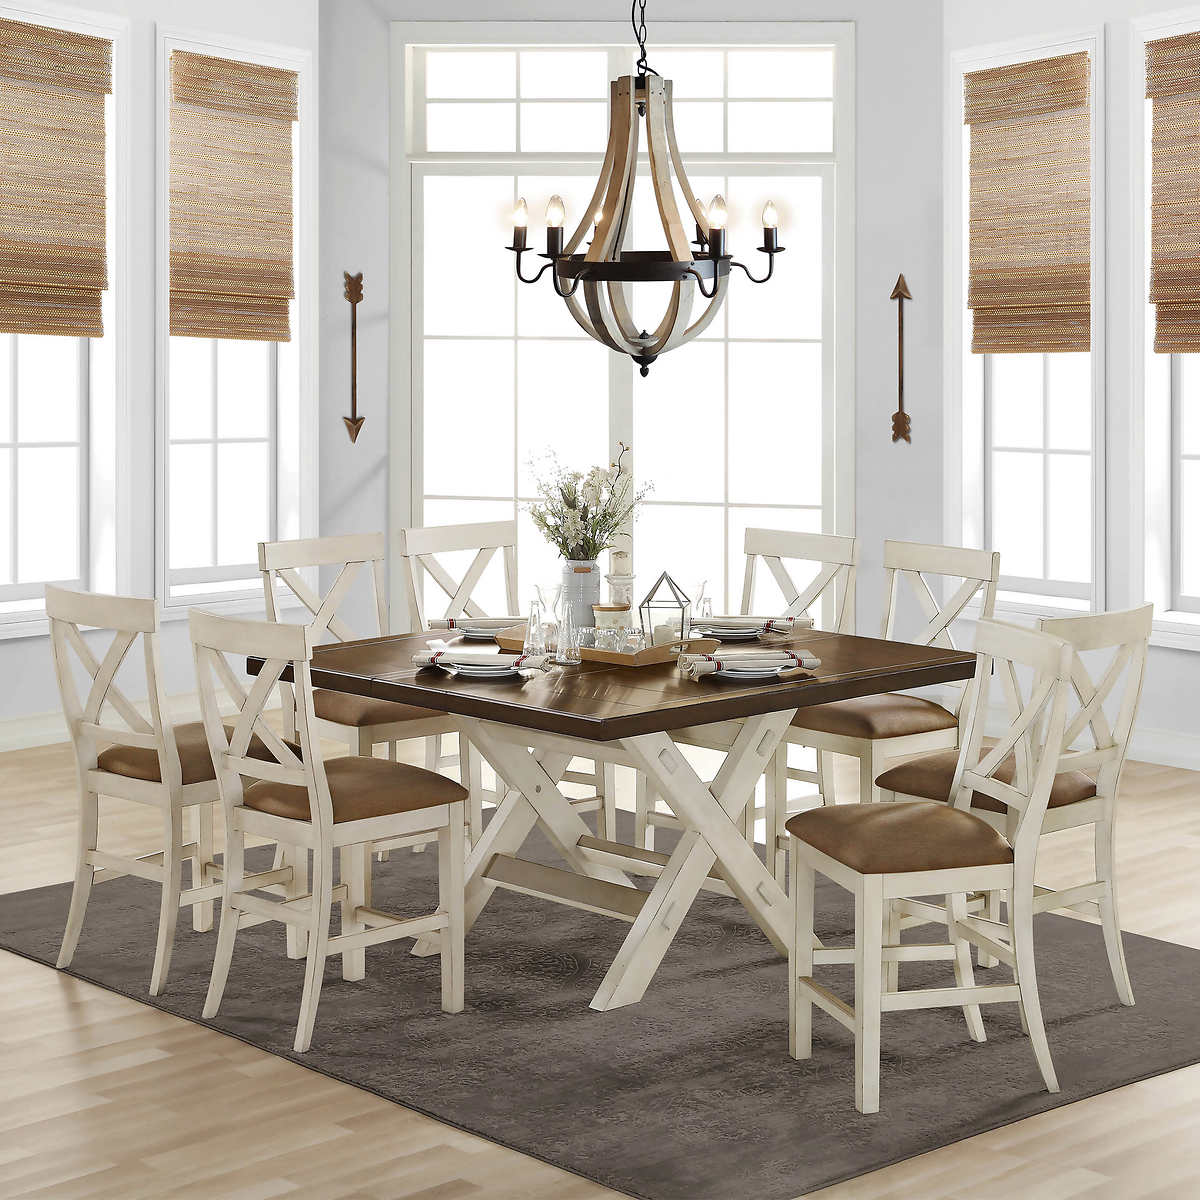 Stefan 9 piece Counter Height Dining Set   Costco